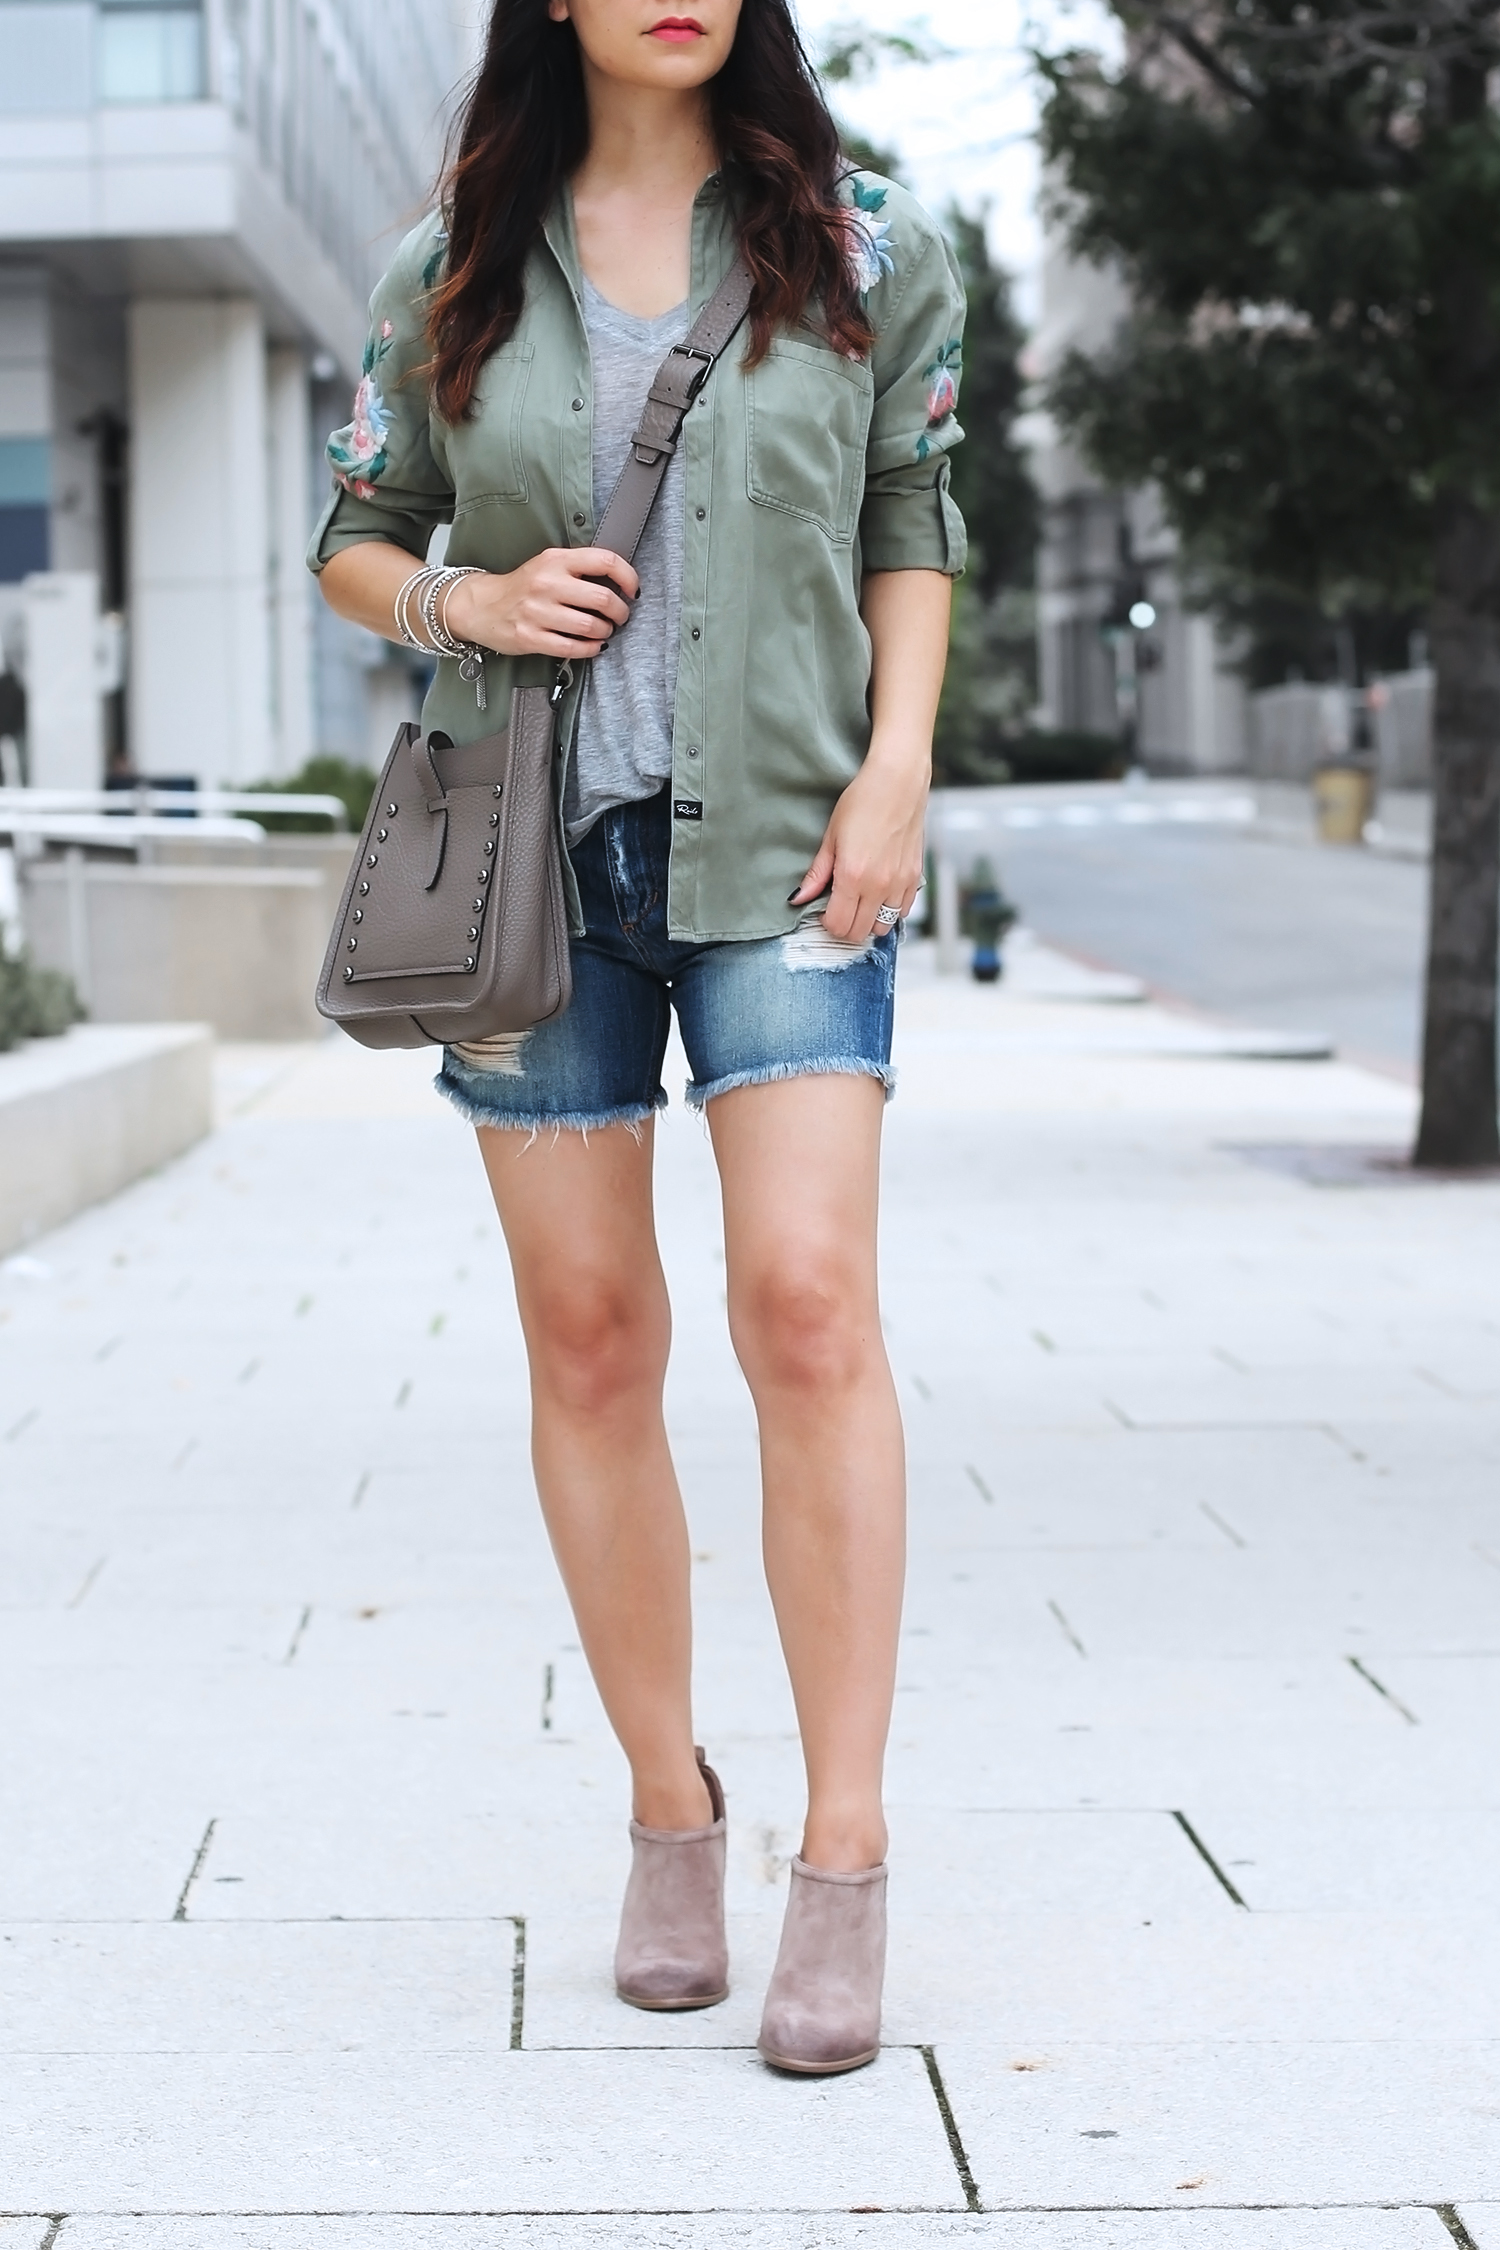 How to wear ankle boots with shorts